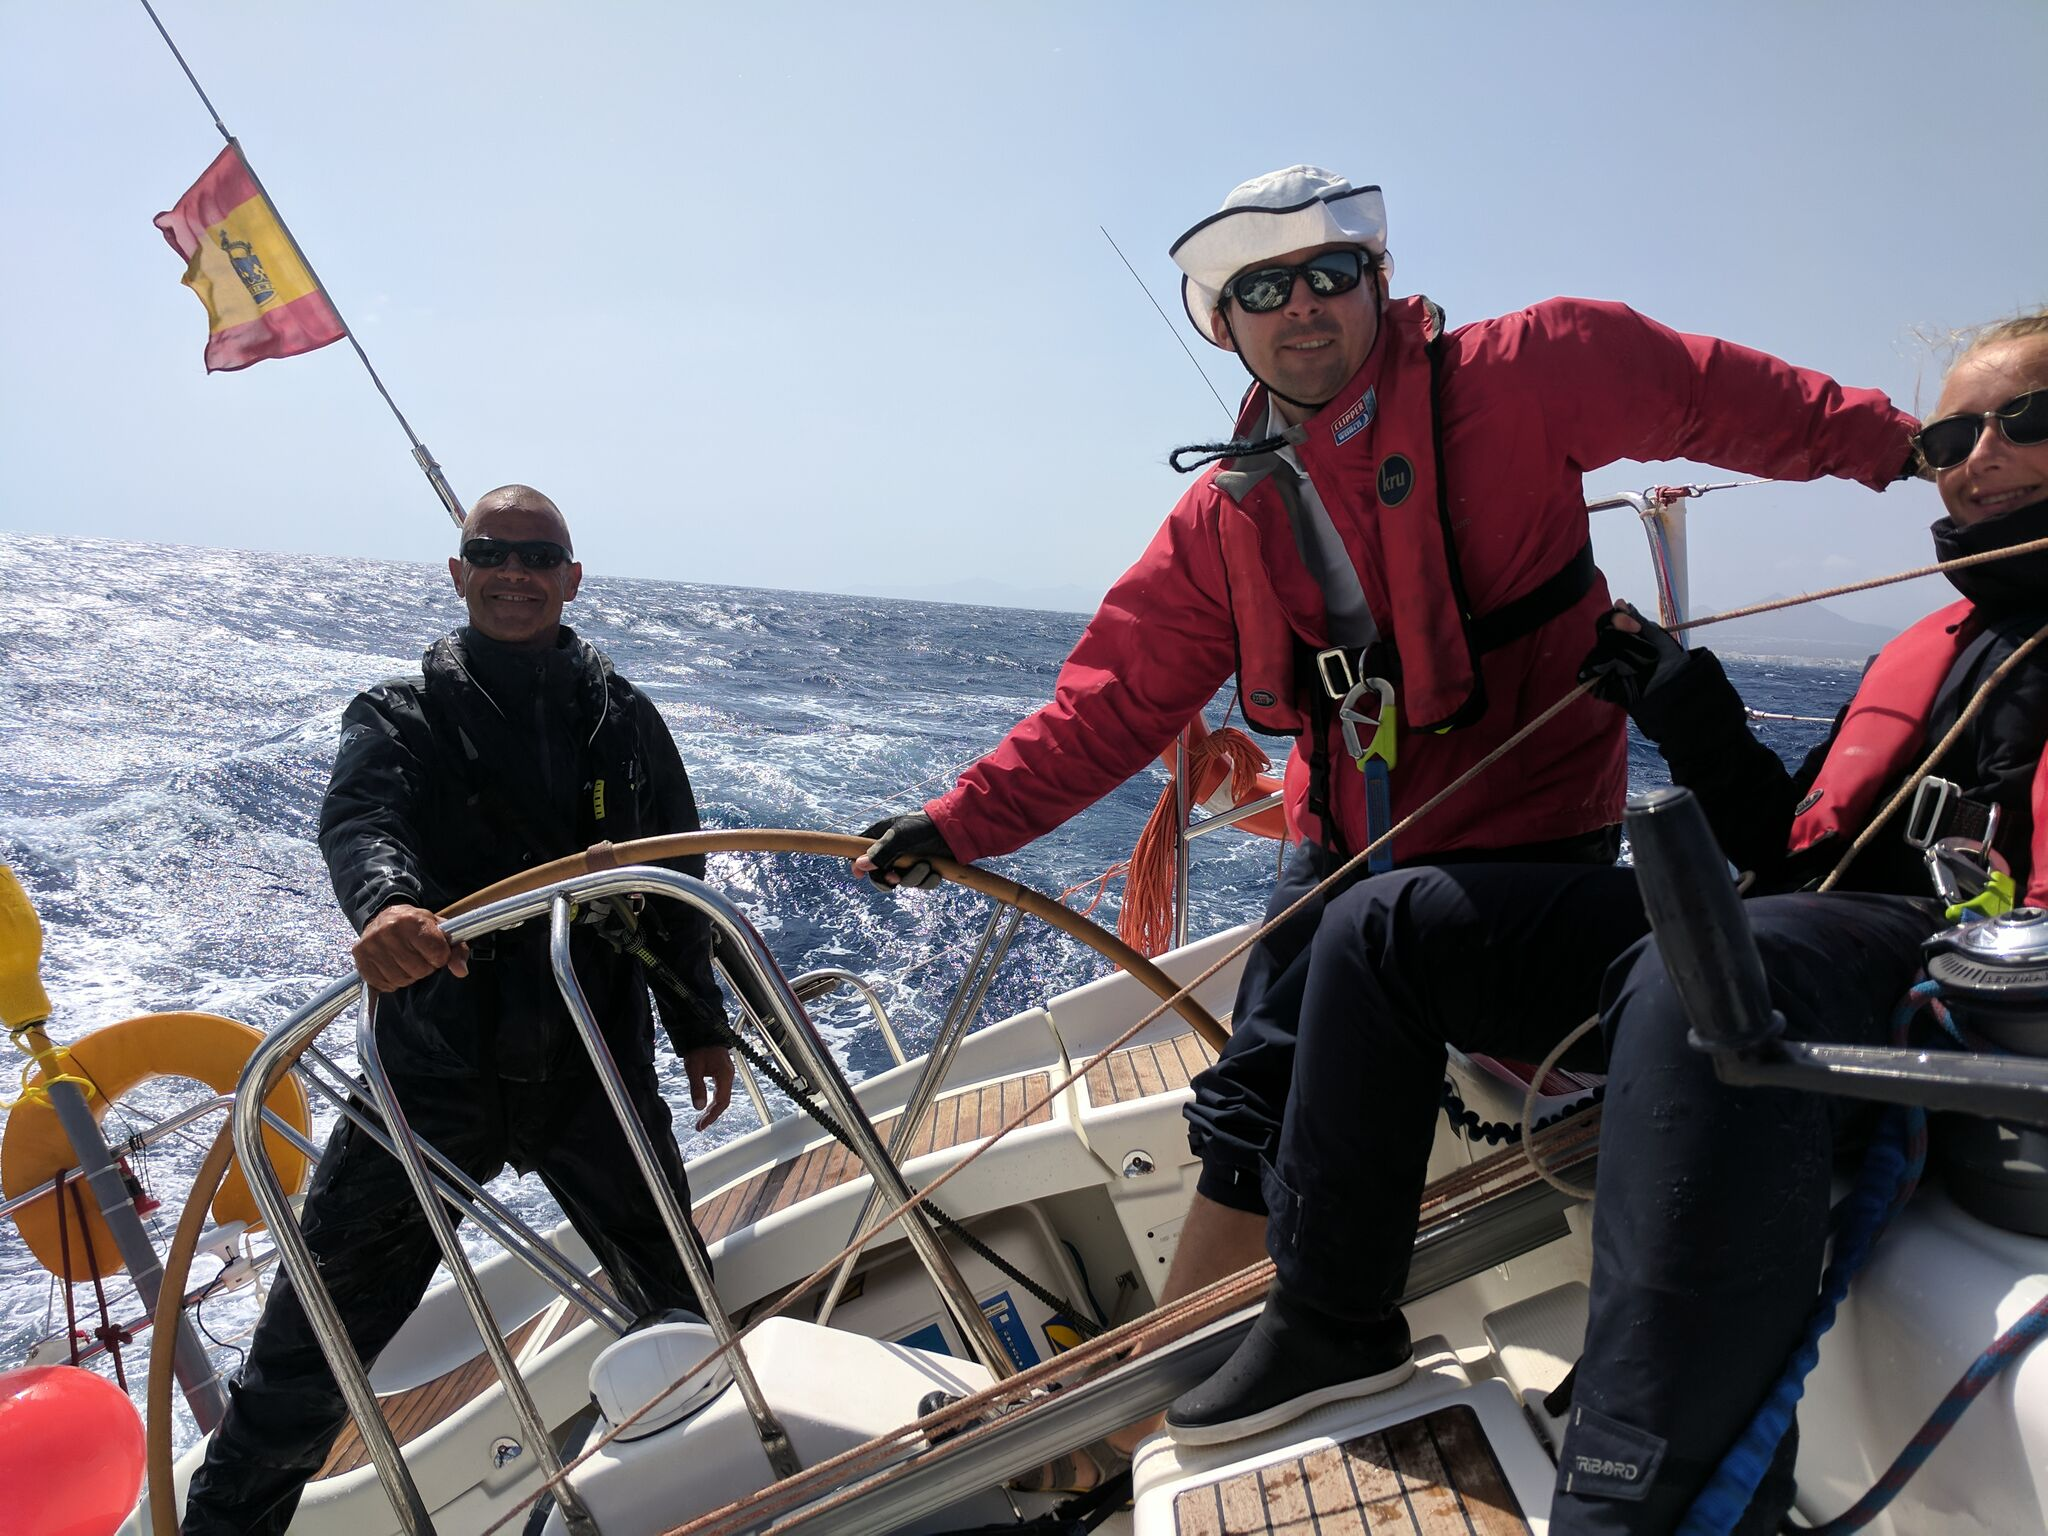 Helming in all conditions